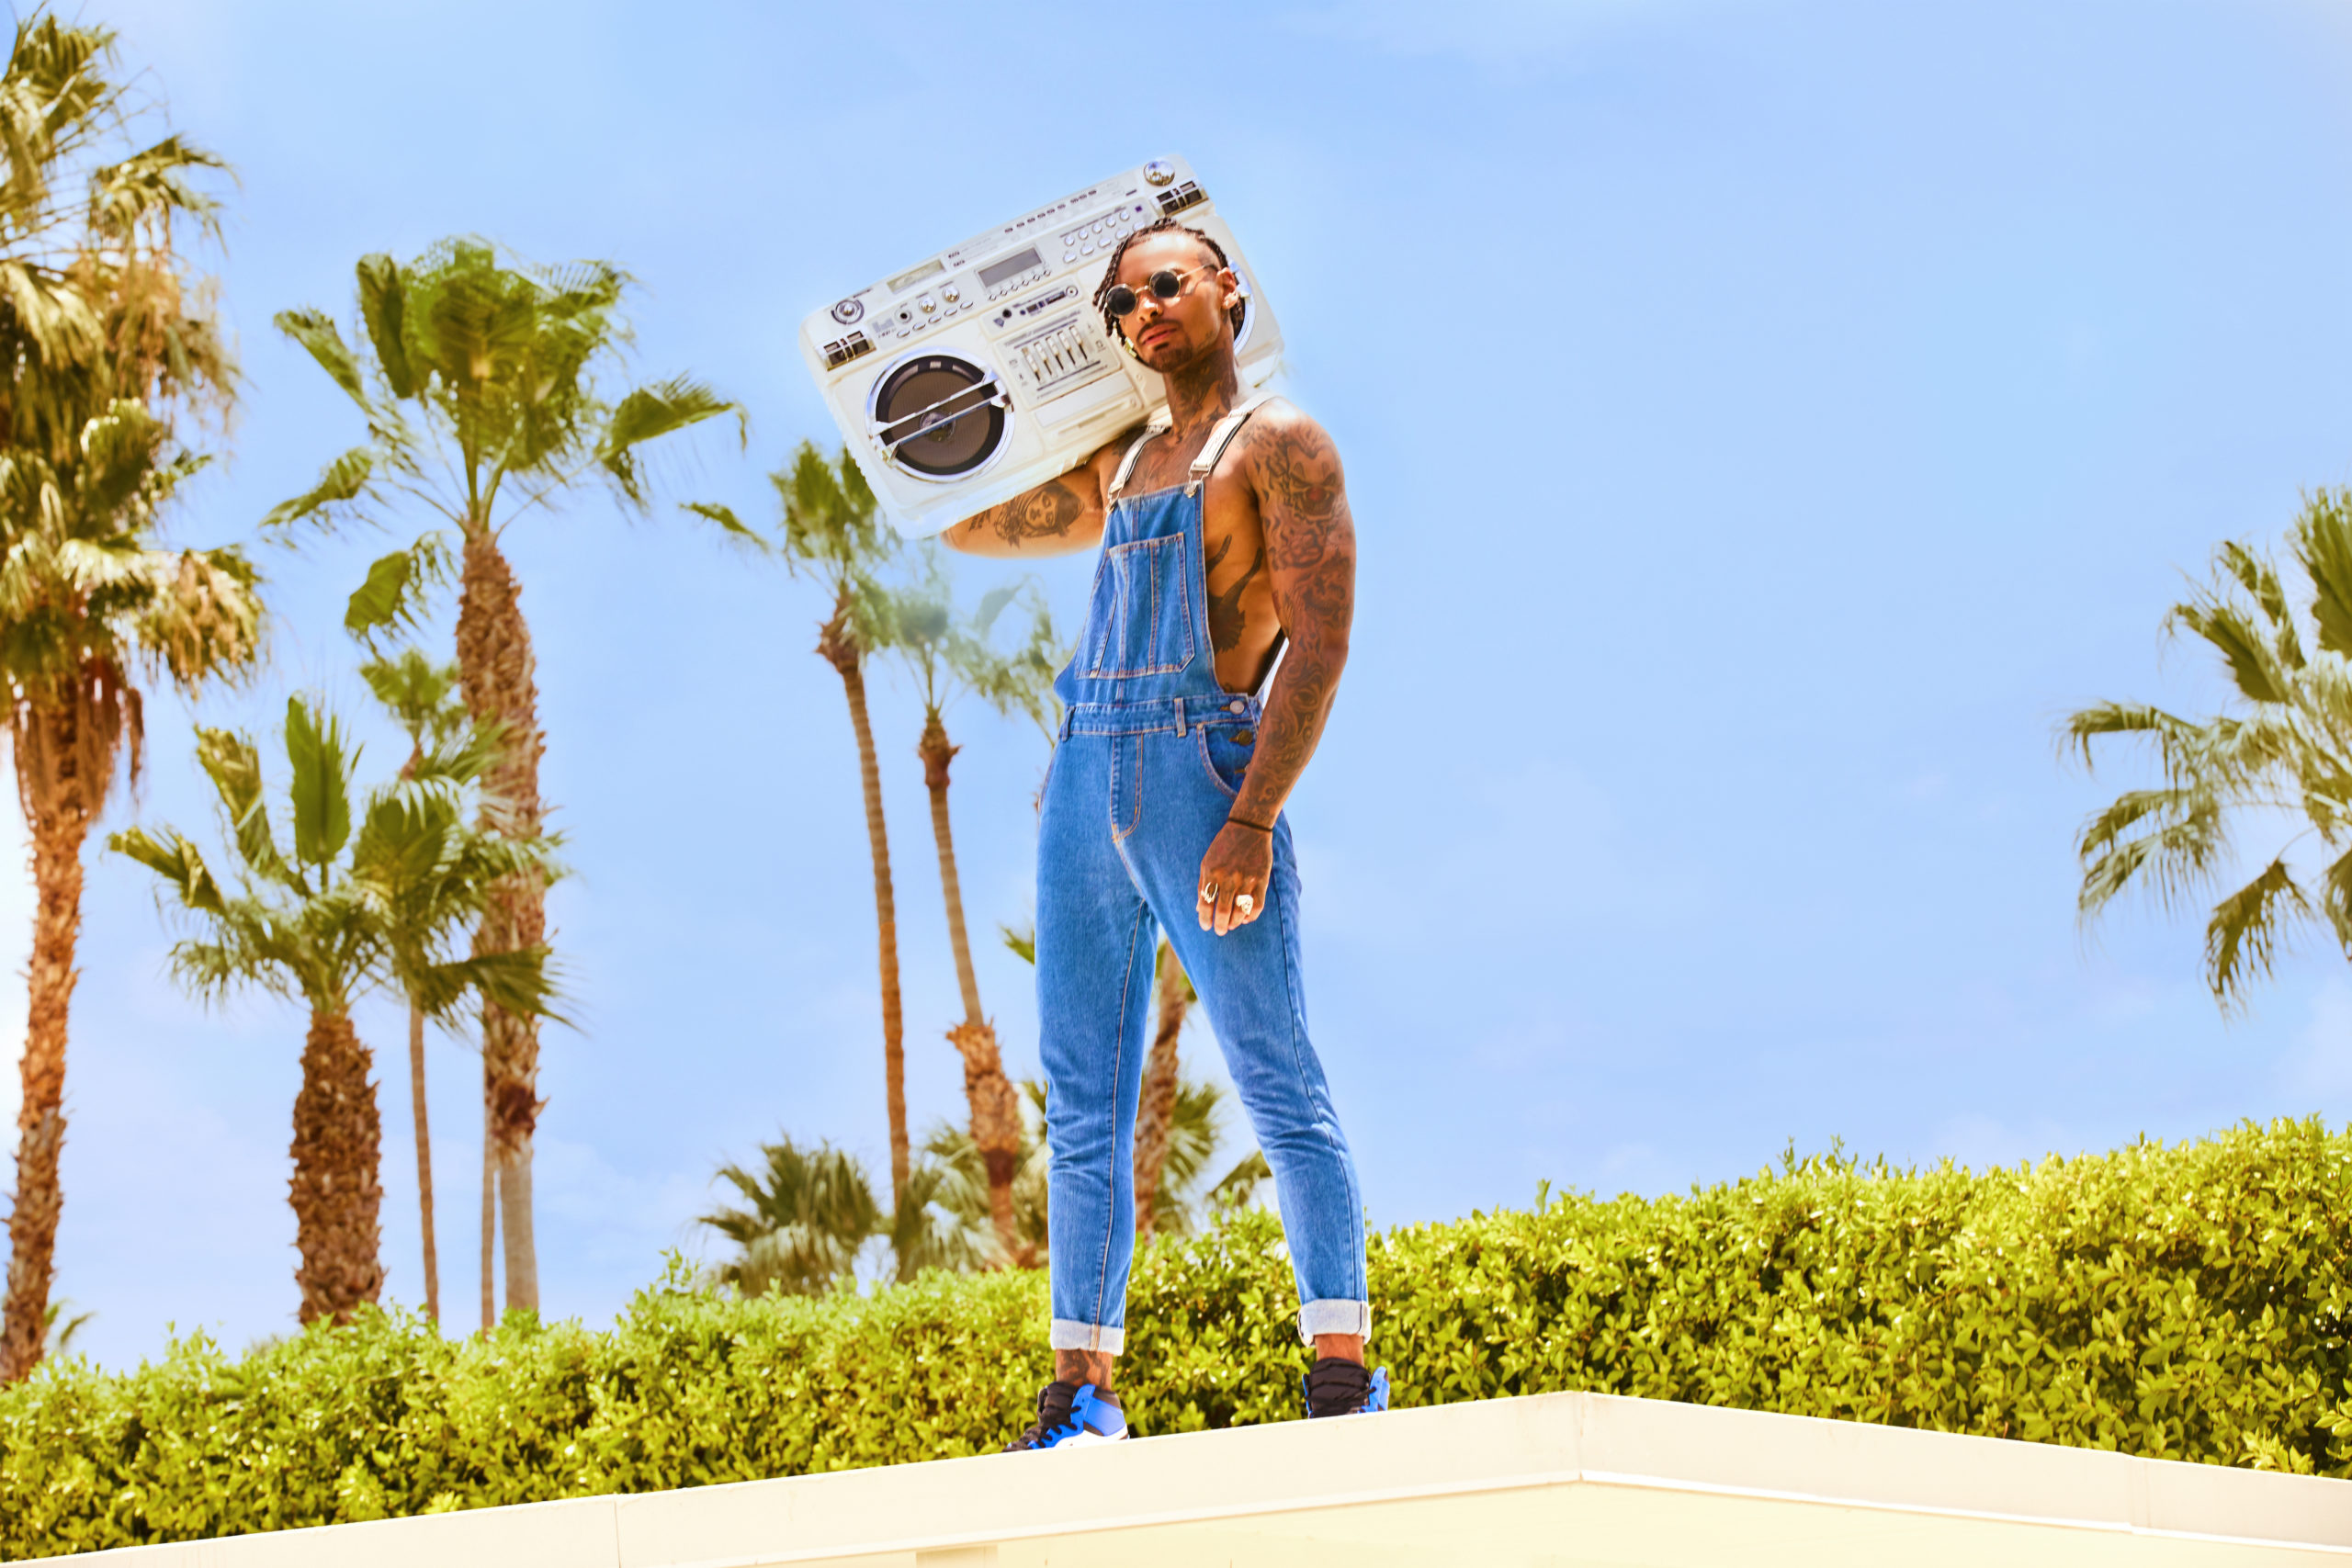 How to Wear Men's Dungarees? | Top Tips to Pull Off the Overalls Trend for Guys